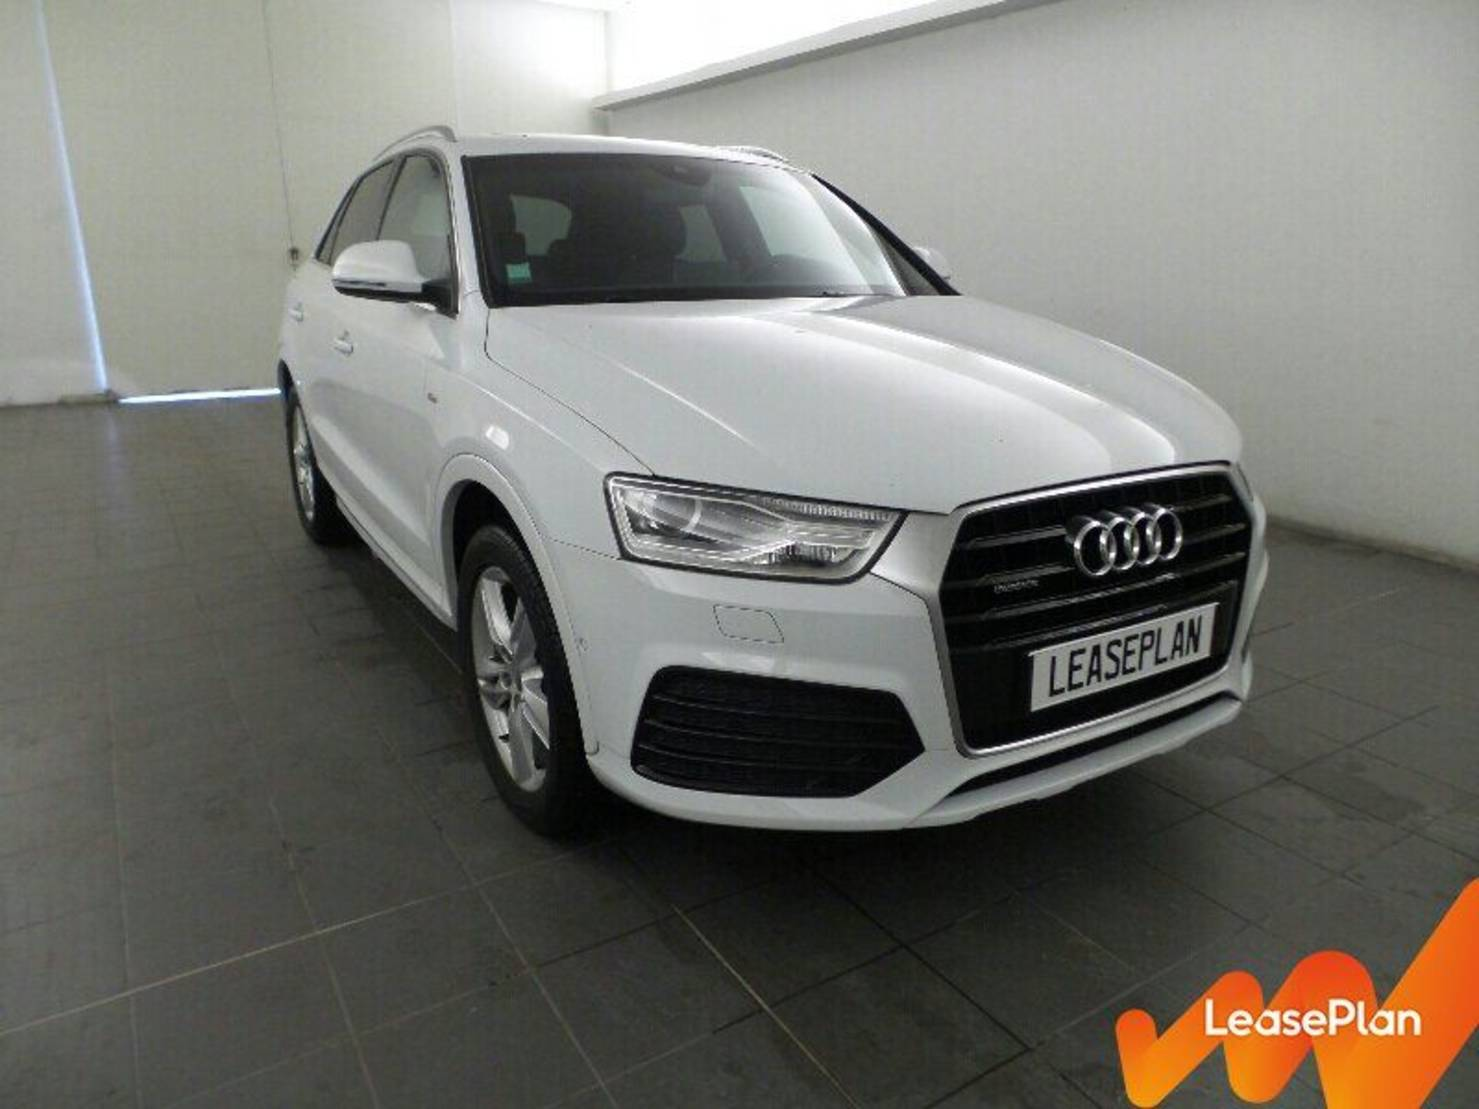 Audi Q3 2.0 TDI 150 ch S tronic 7 Quattro, Ambition Luxe detail2